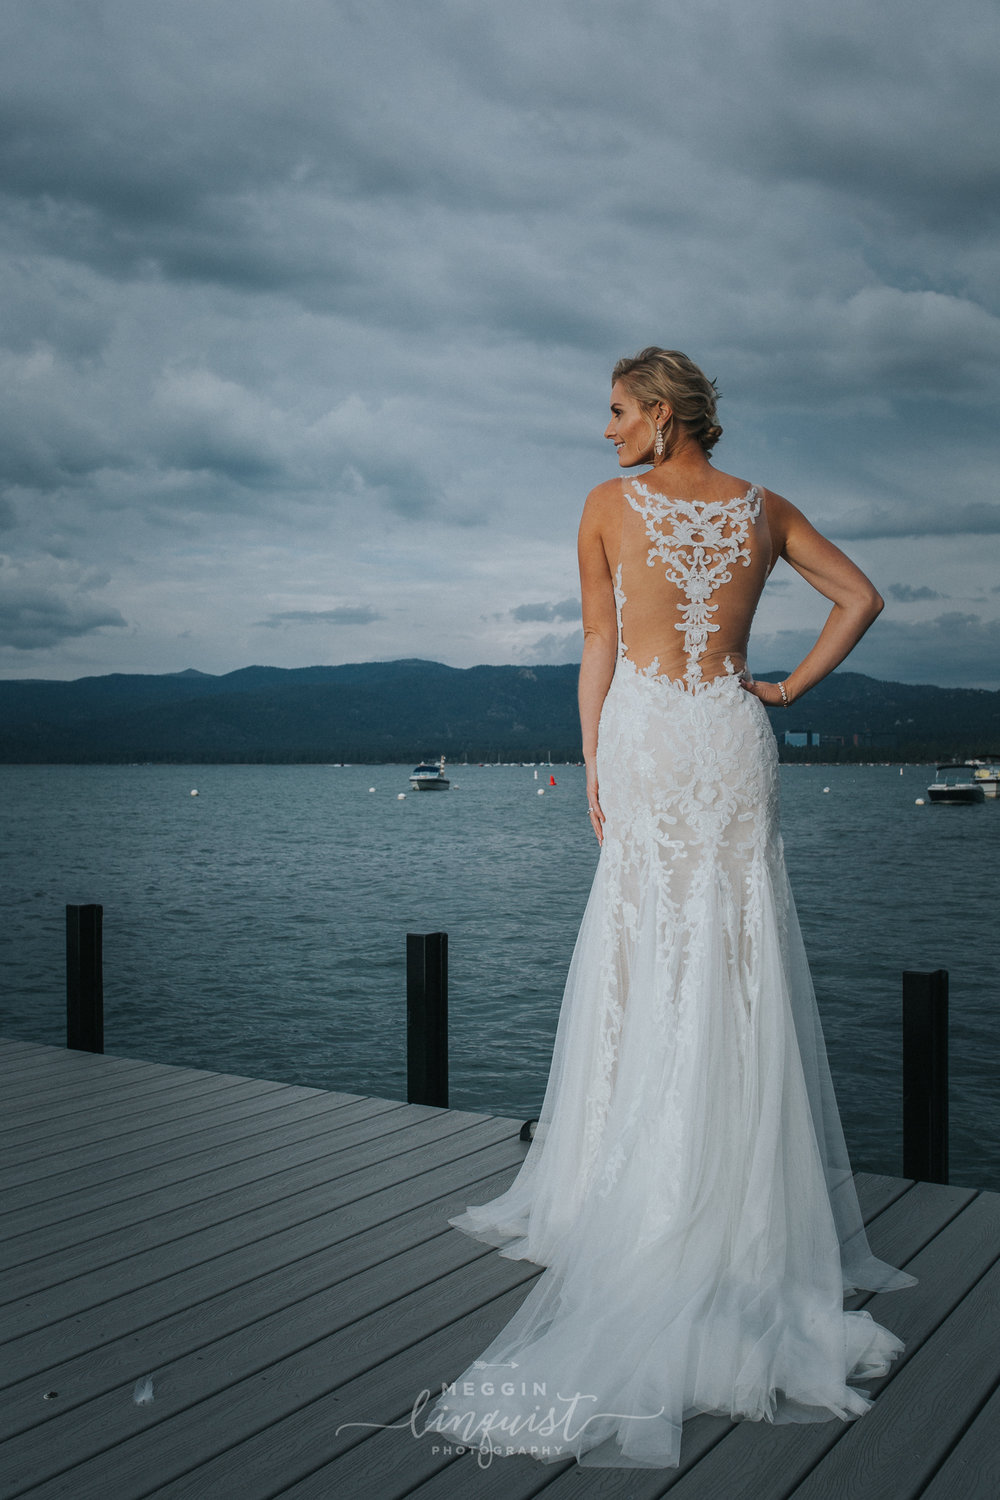 regan-beach-wedding-reno-lake-tahoe-wedding-photographer-64.jpg